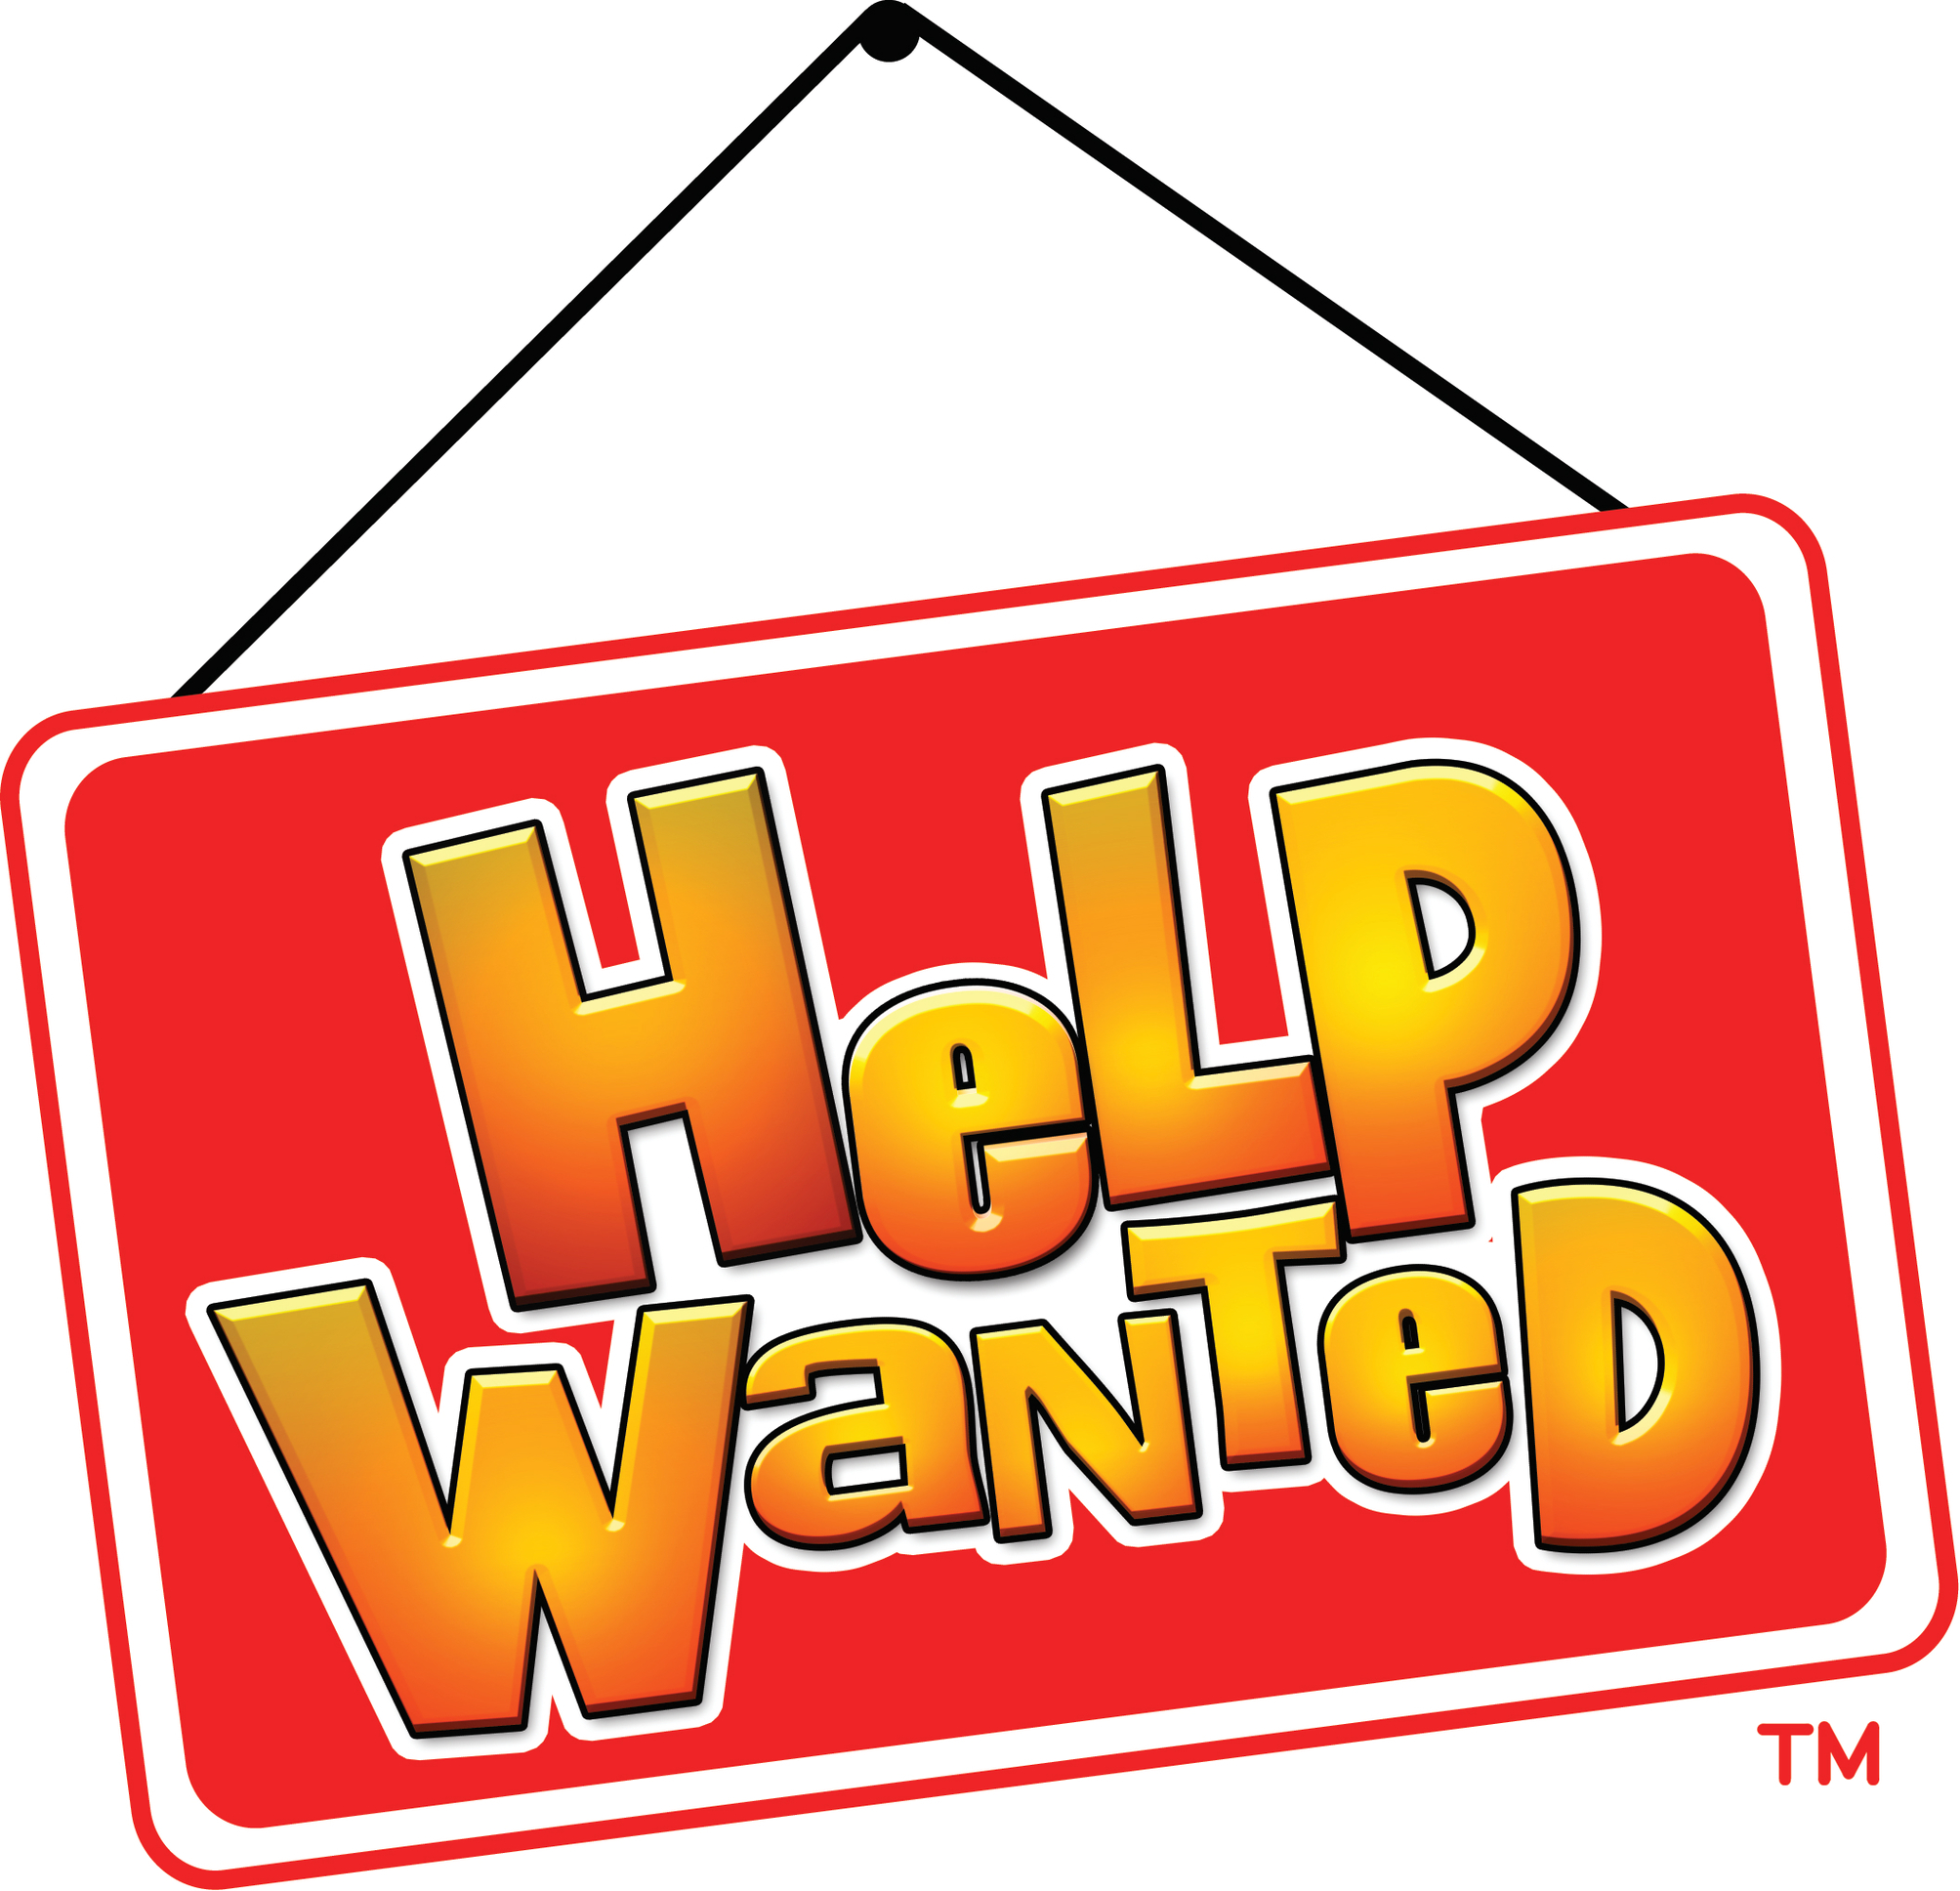 Wanted clipart logo.